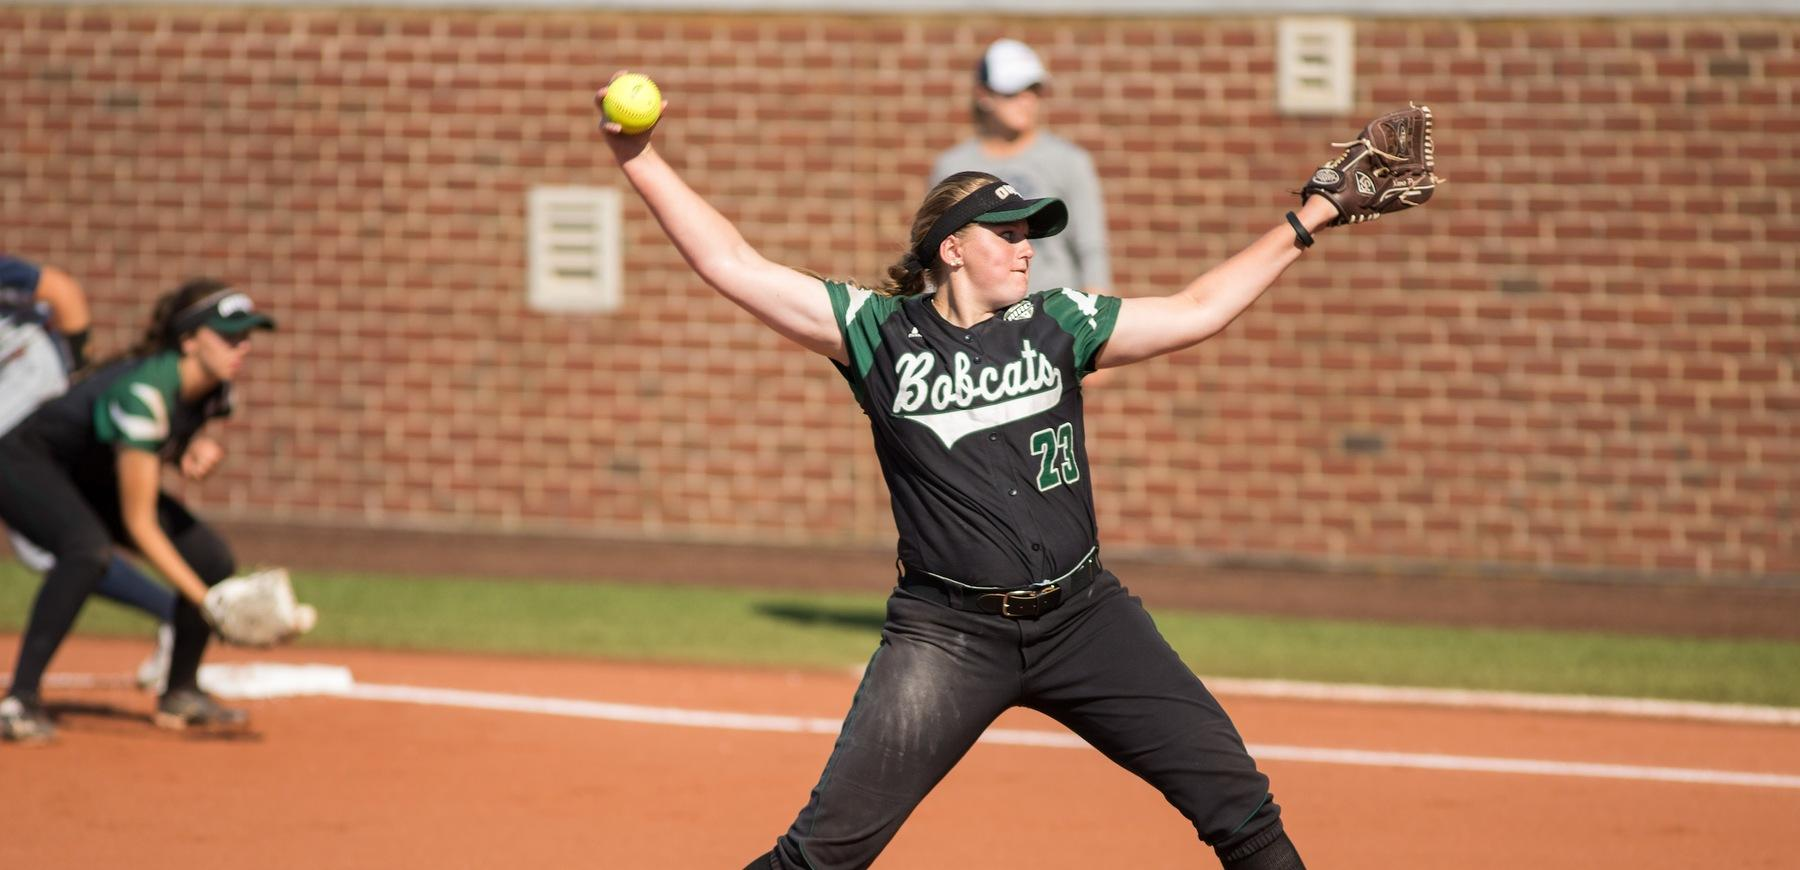 Stiene's 14 Strikeouts Leads Ohio Softball to 3-0 Victory Against Jacksonville State